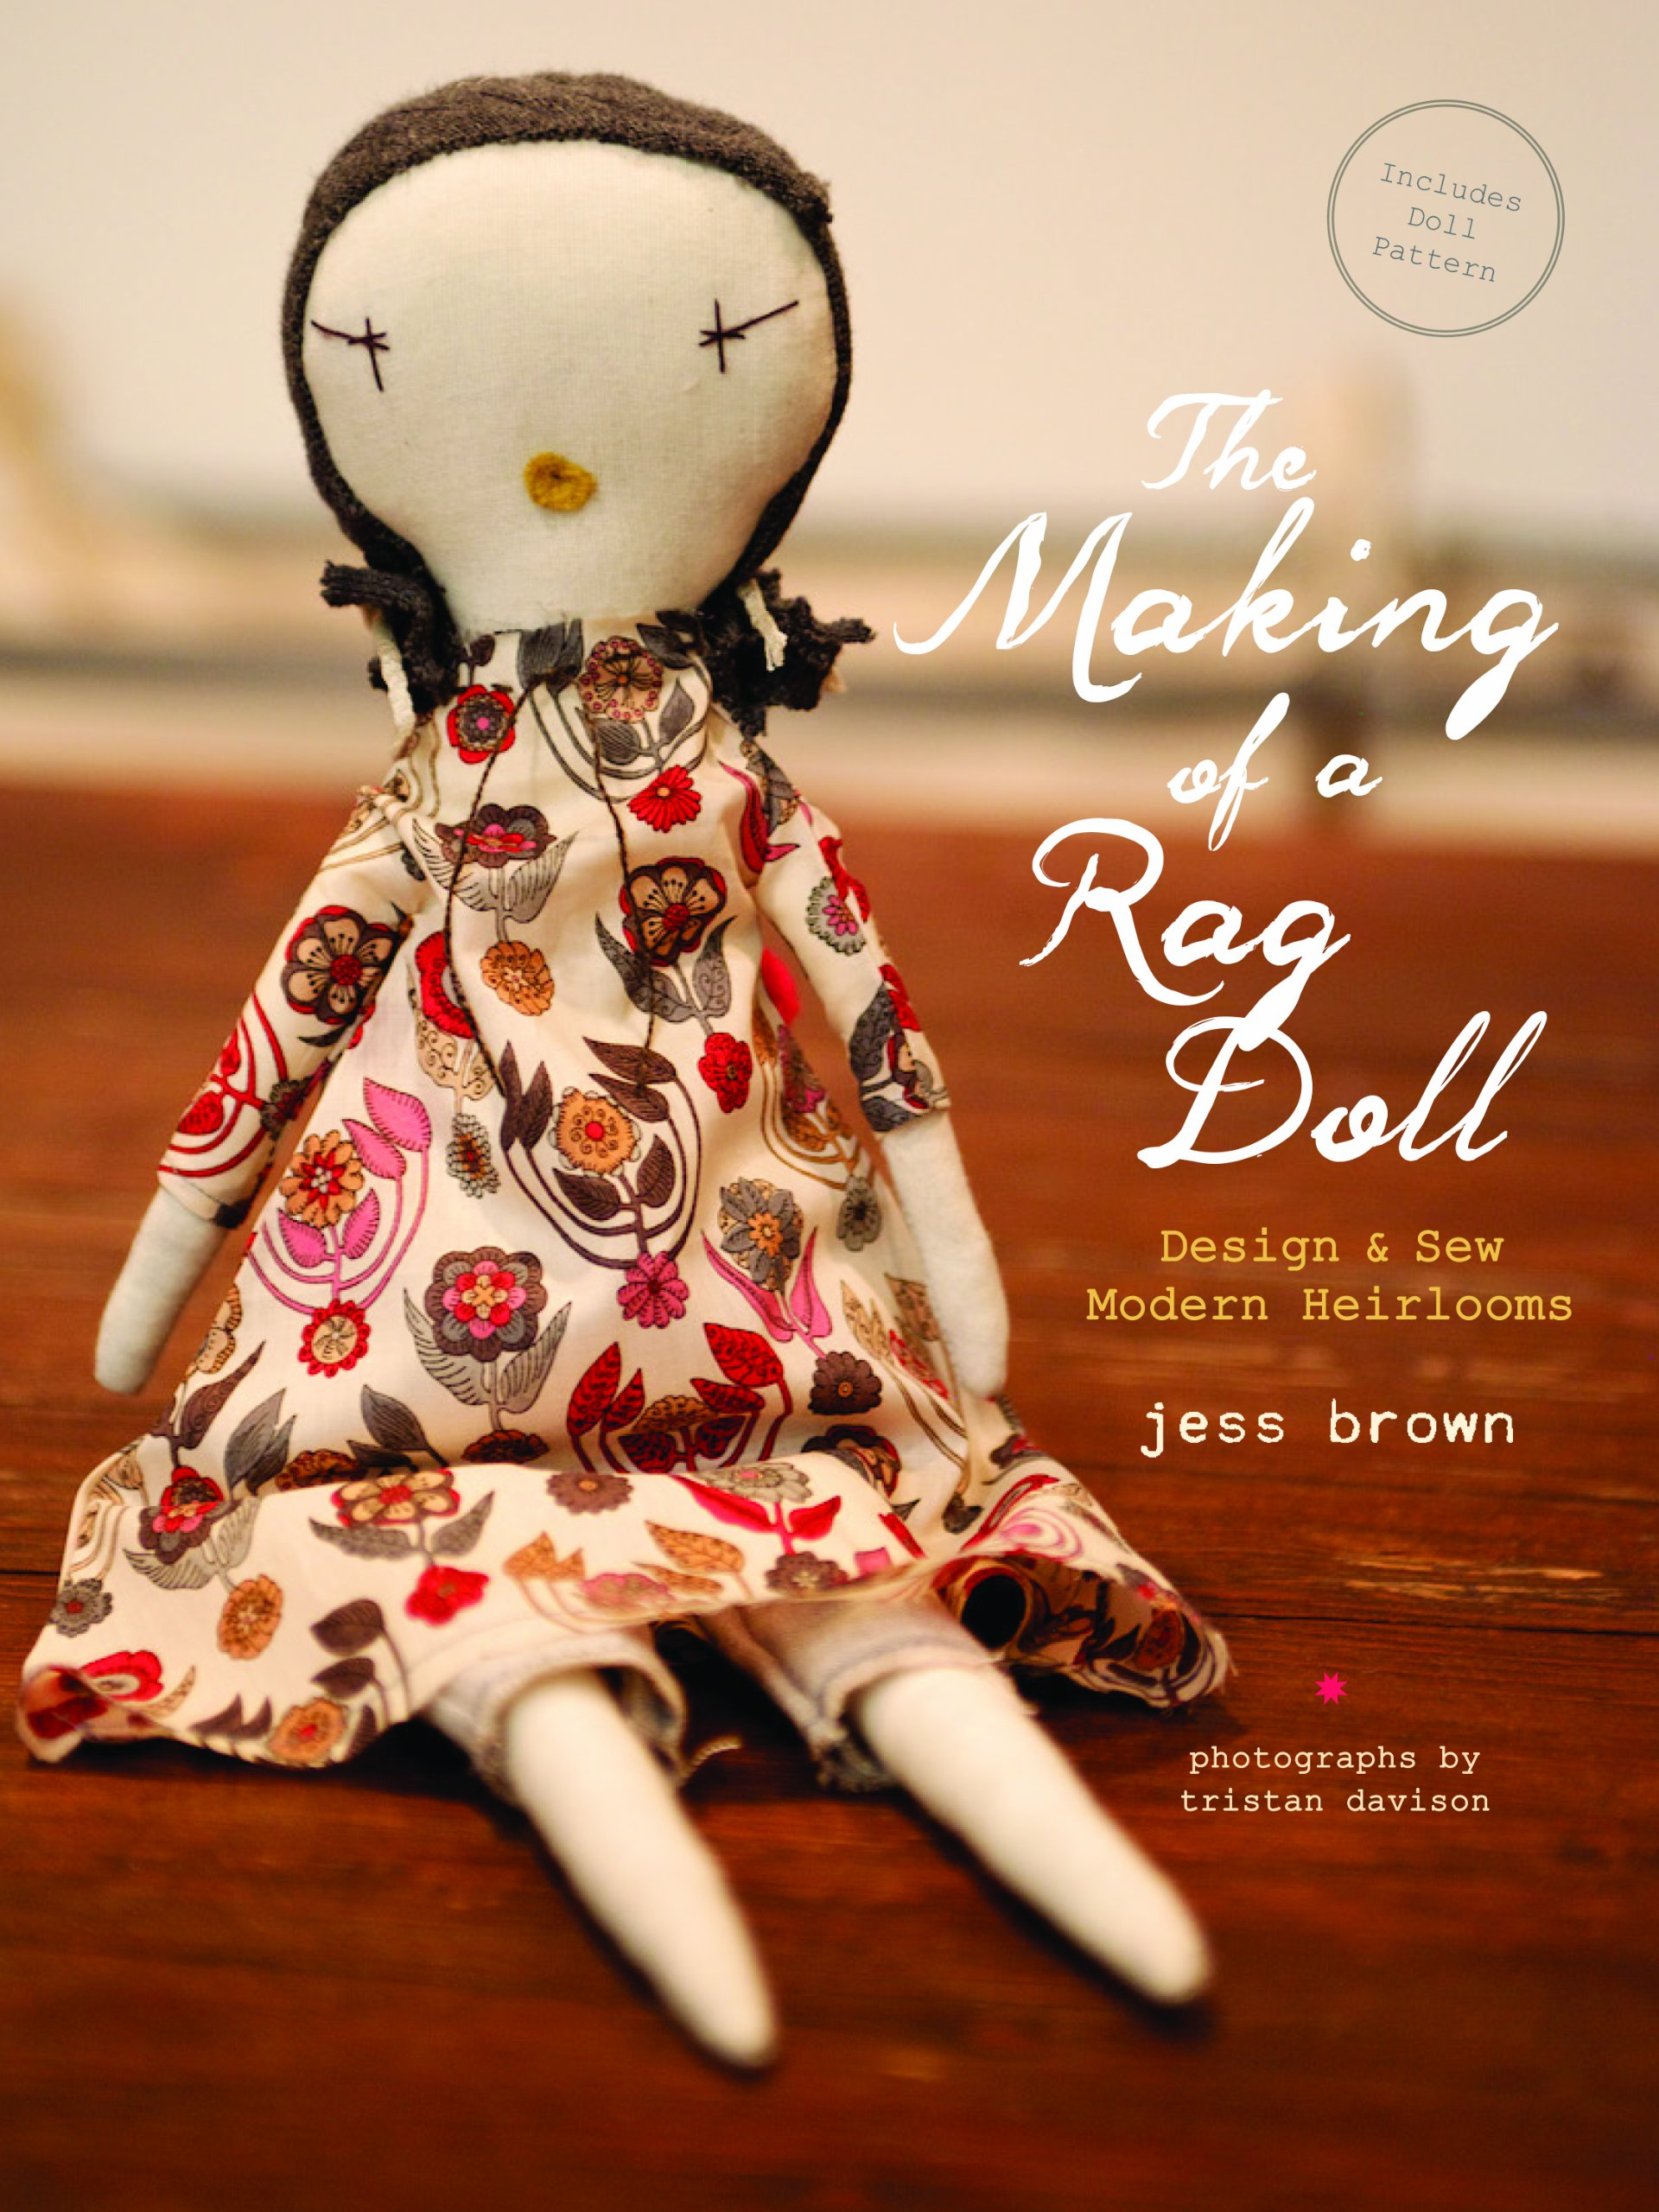 the-making-of-a-rag-doll-design-sew-modern-heirlooms